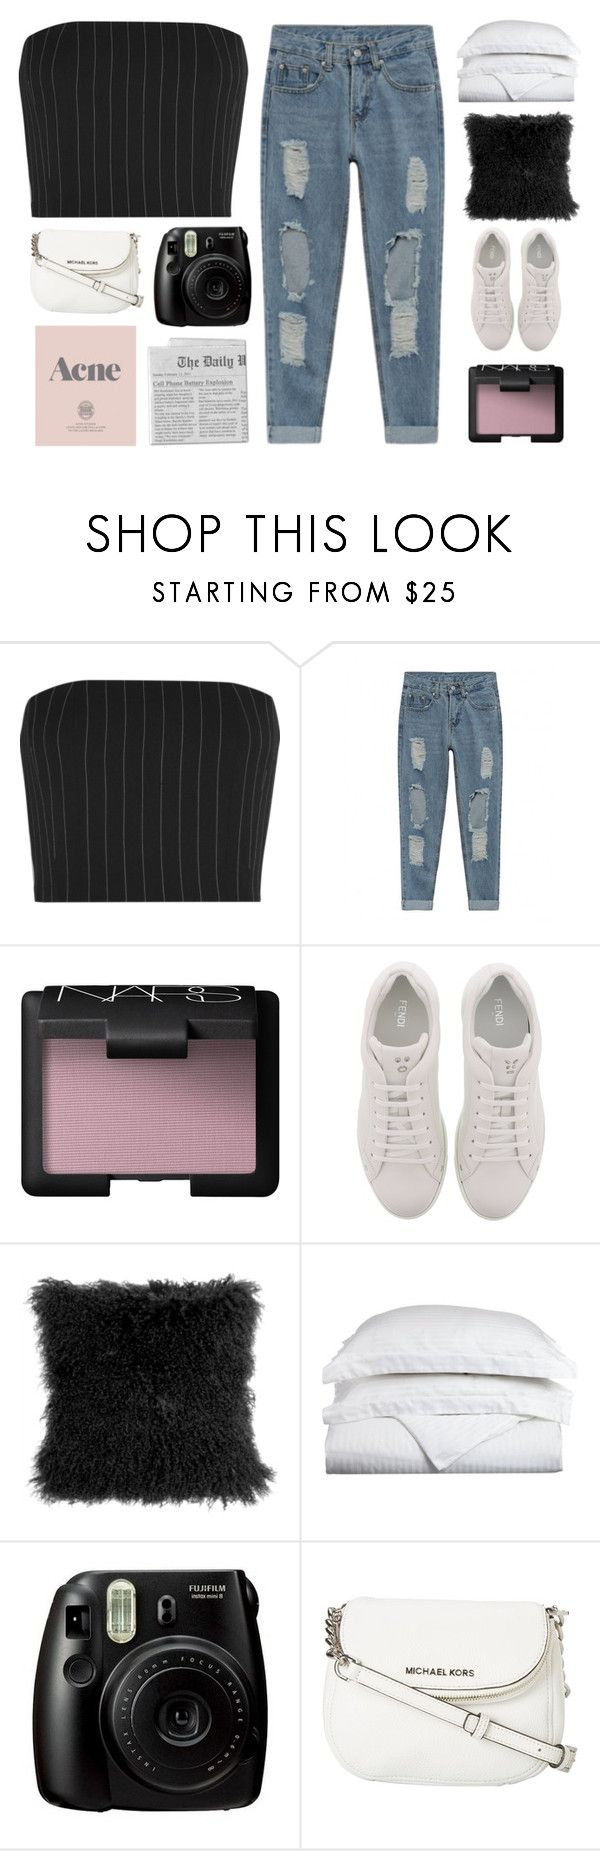 """HEY BROTHER DO YOU STILL BELIEVE IN ONE ANOTHER"" by lonelyhearts-clubb ❤ liked on Polyvore featuring Thierry Mugler, NARS Cosmetics, Fendi, Pillow Decor, Luxor Treasures, Prada, Fujifilm, MICHAEL Michael Kors and nataliesimplesetss"